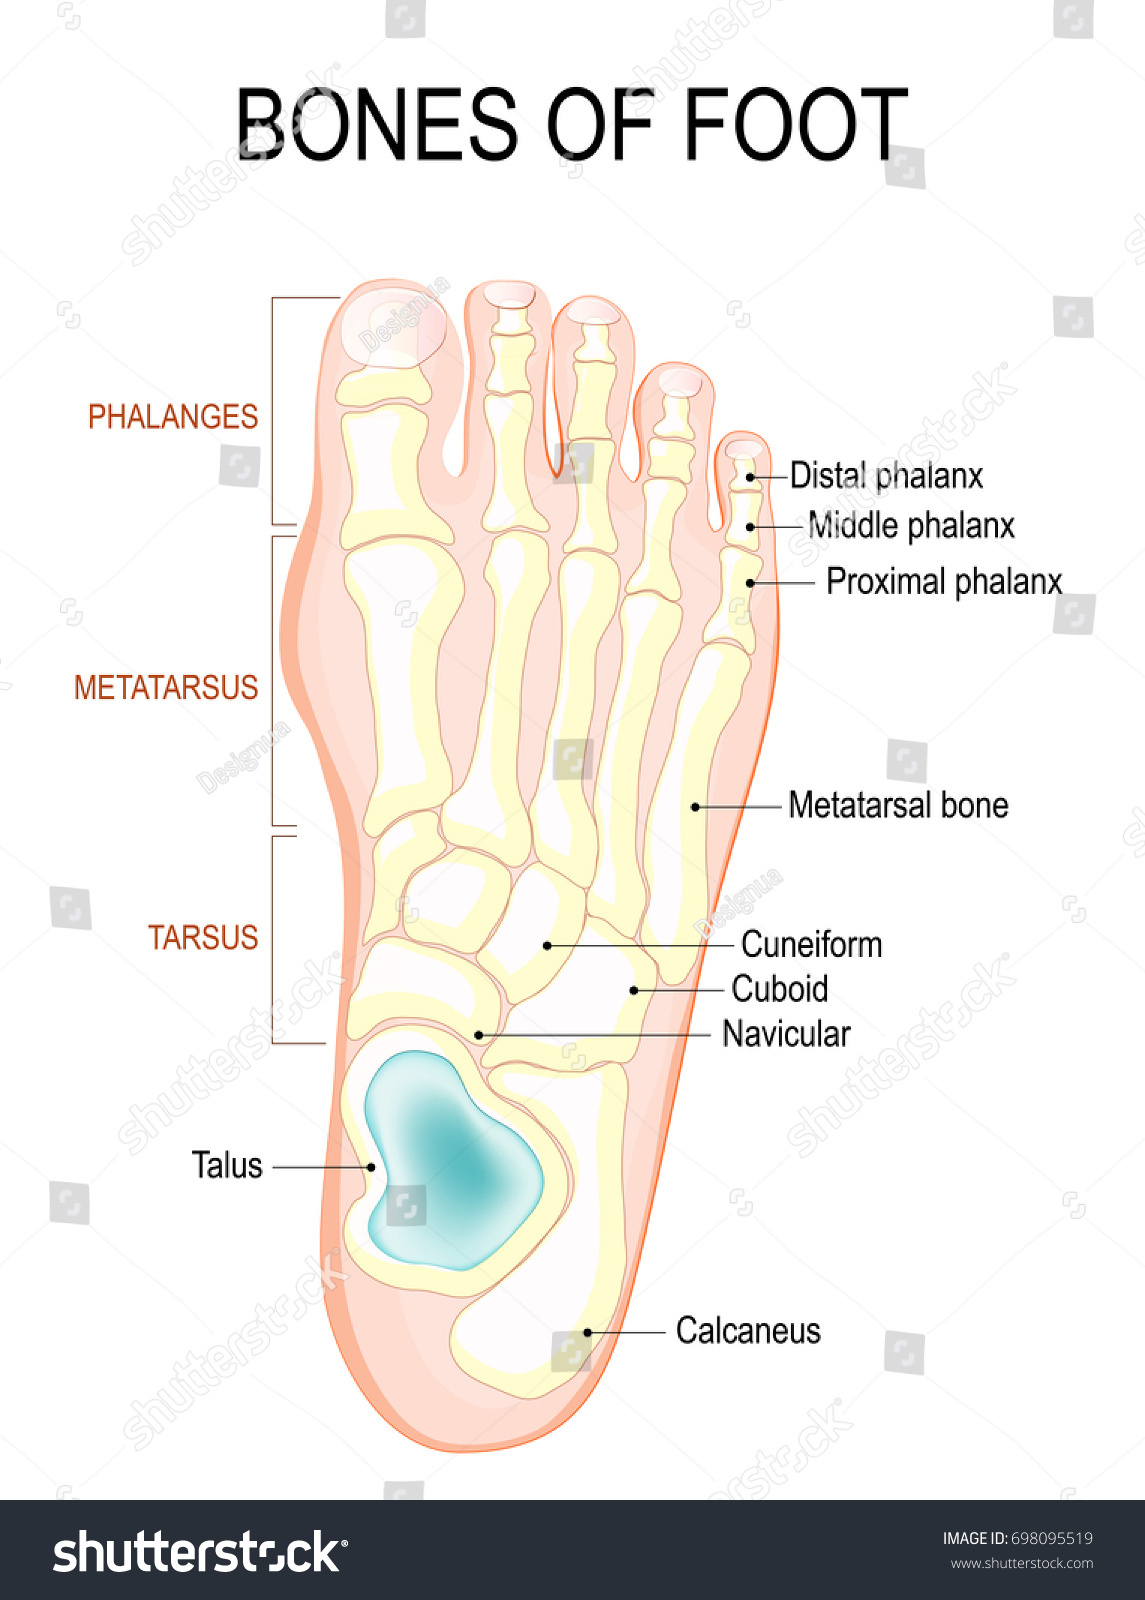 Bones Foot Human Anatomy Diagram Shows Stock Vektorgrafik